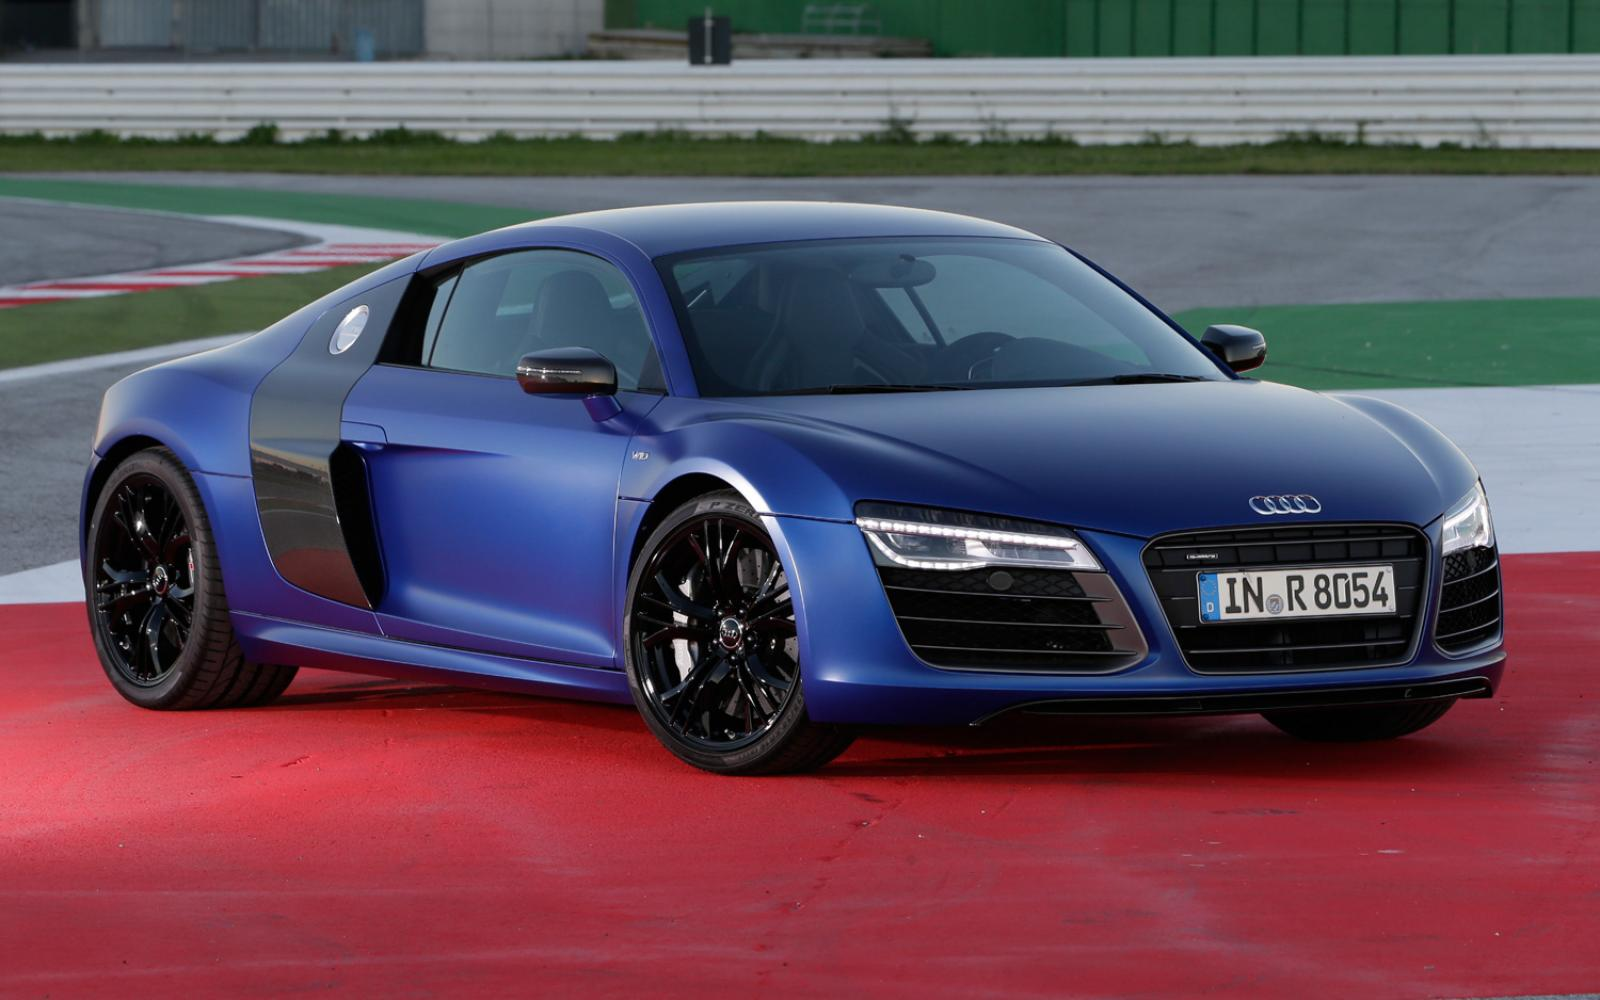 2014 Audi R8 V8 Northern California: Information And Photos